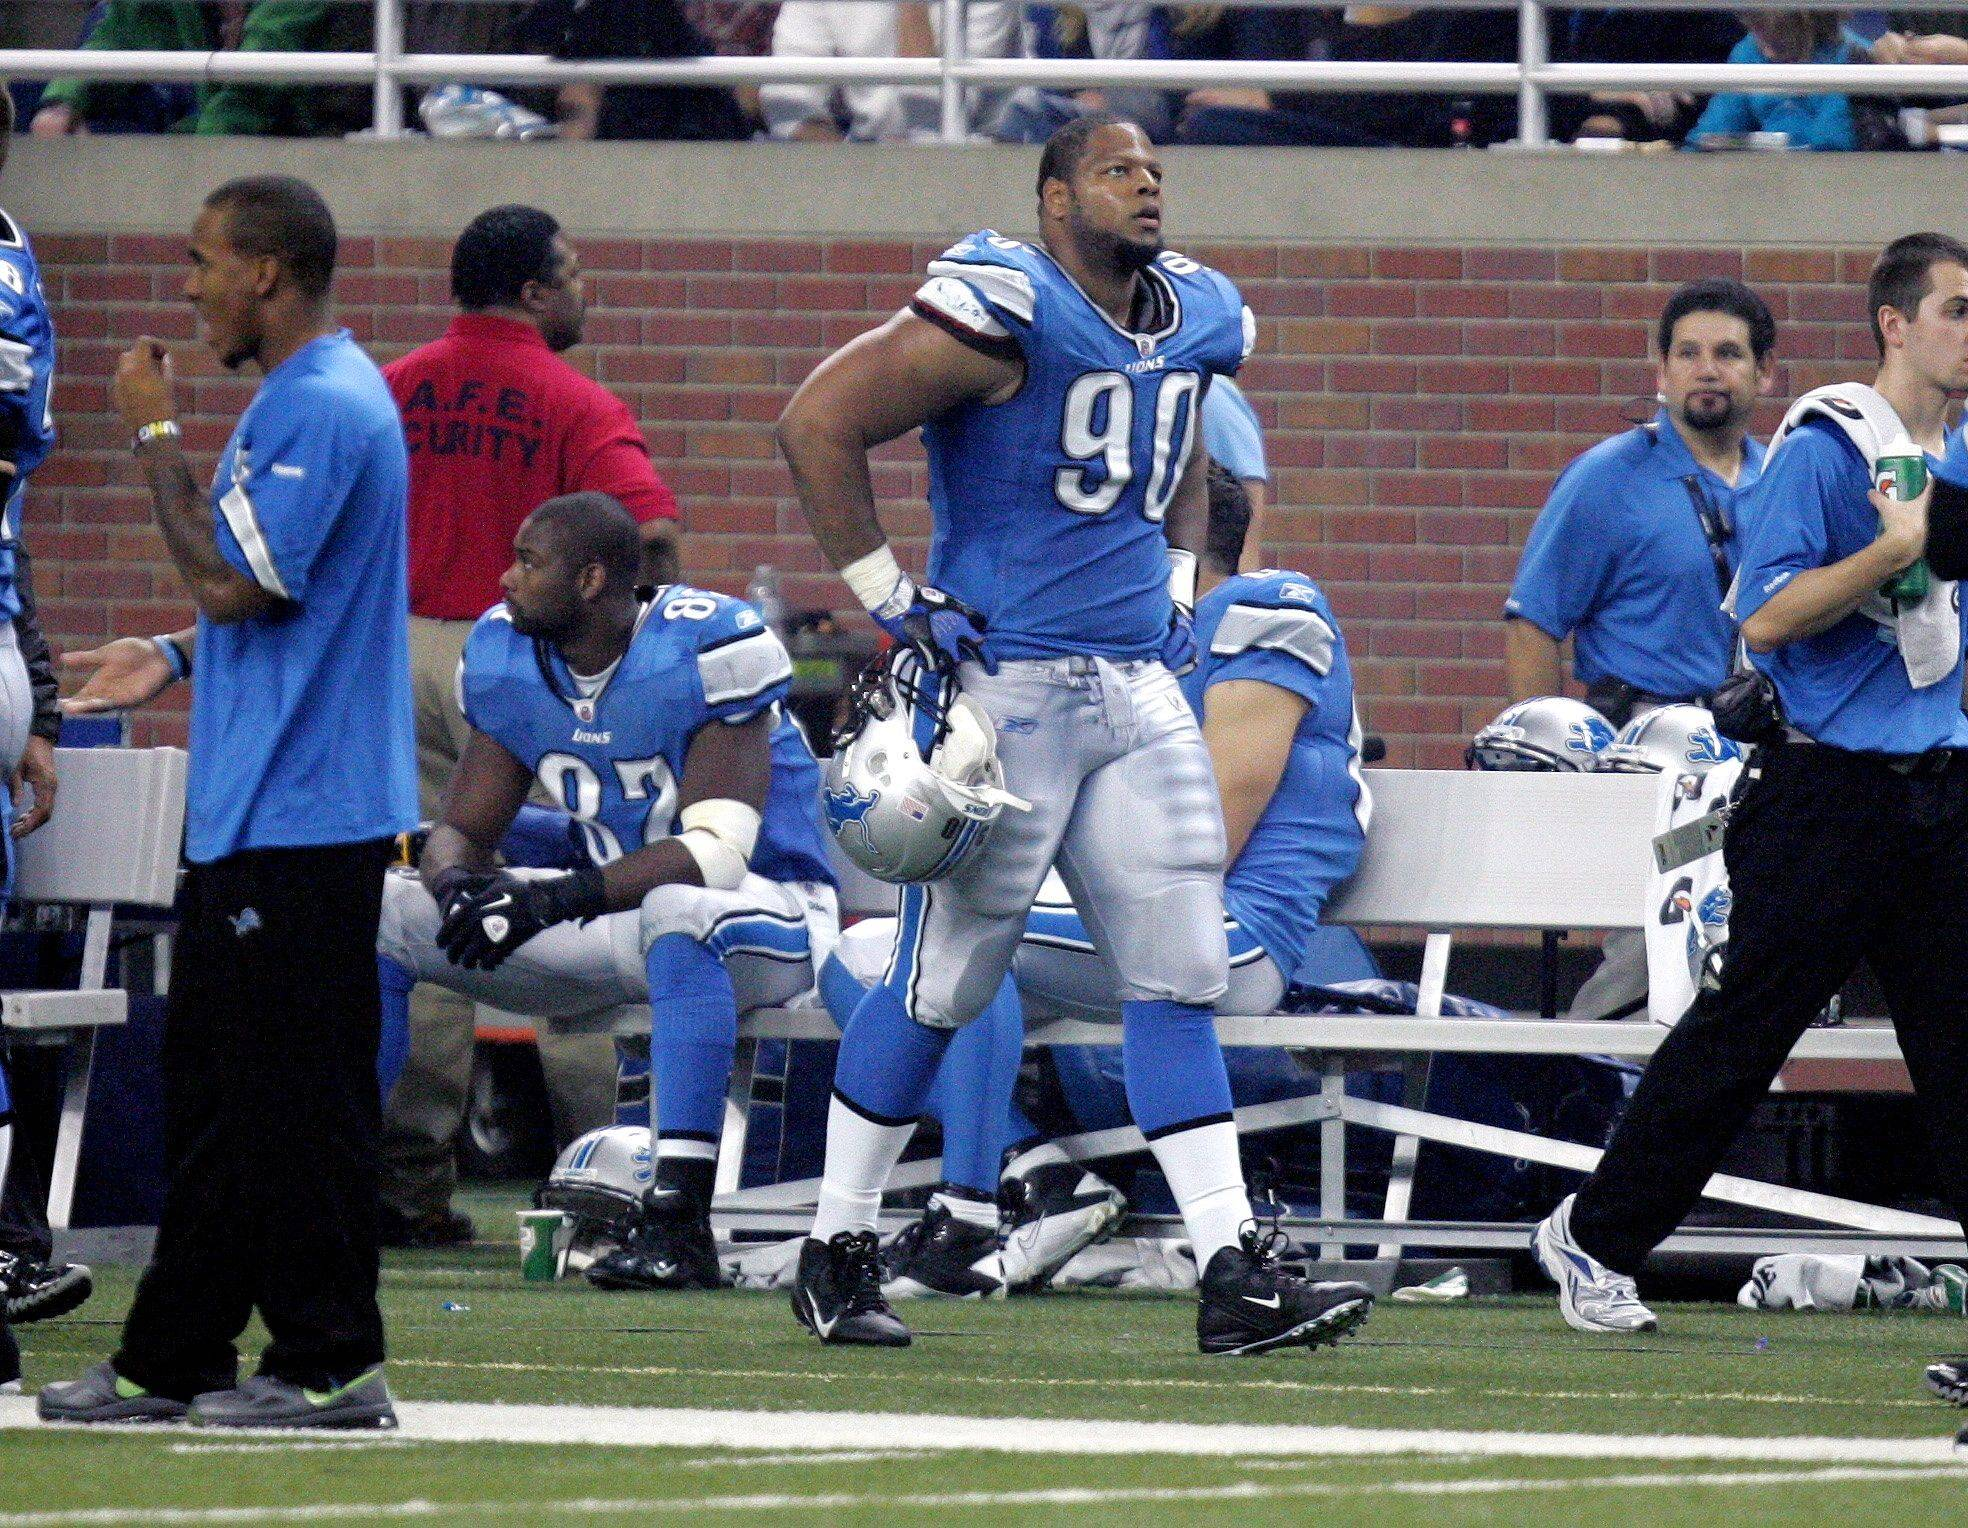 Detroit Lions defensive tackle Ndamukong Suh (90) on the sidelines after being ejected for an incident in the third quarter in Thursday's game against the Green Bay Packers in Detroit.